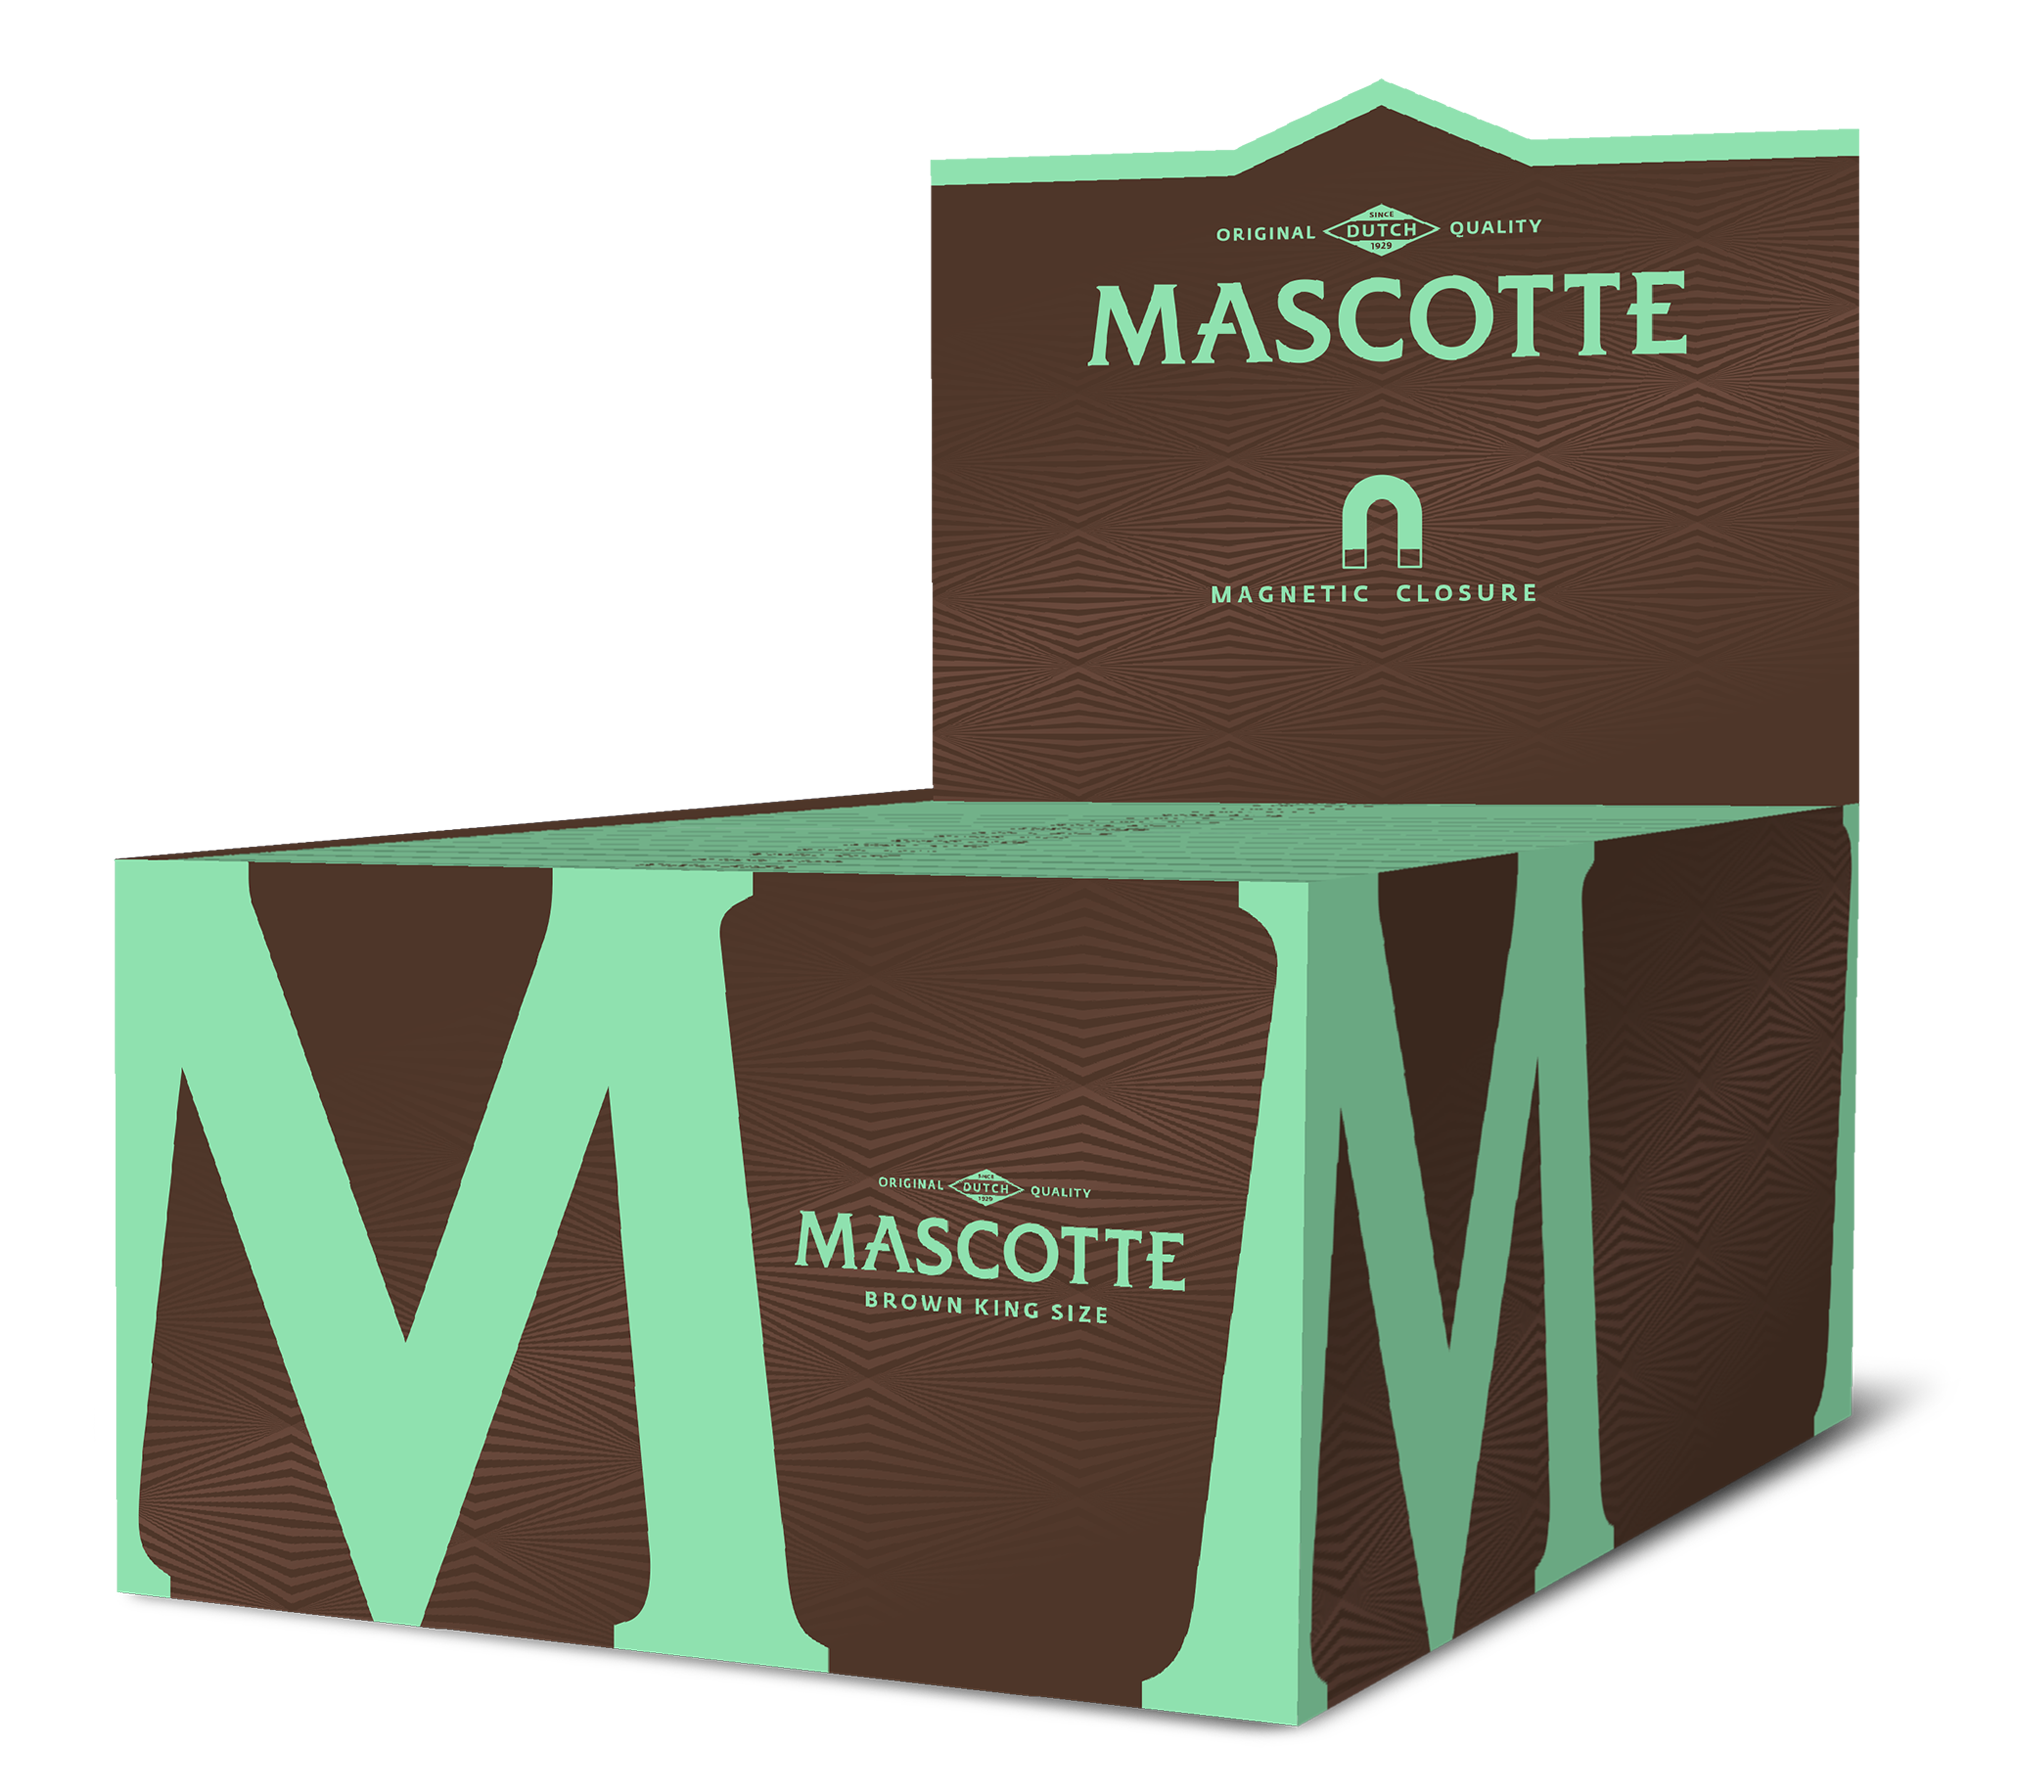 Mascotte Brown King Size (with Magnet) - 34 vloei